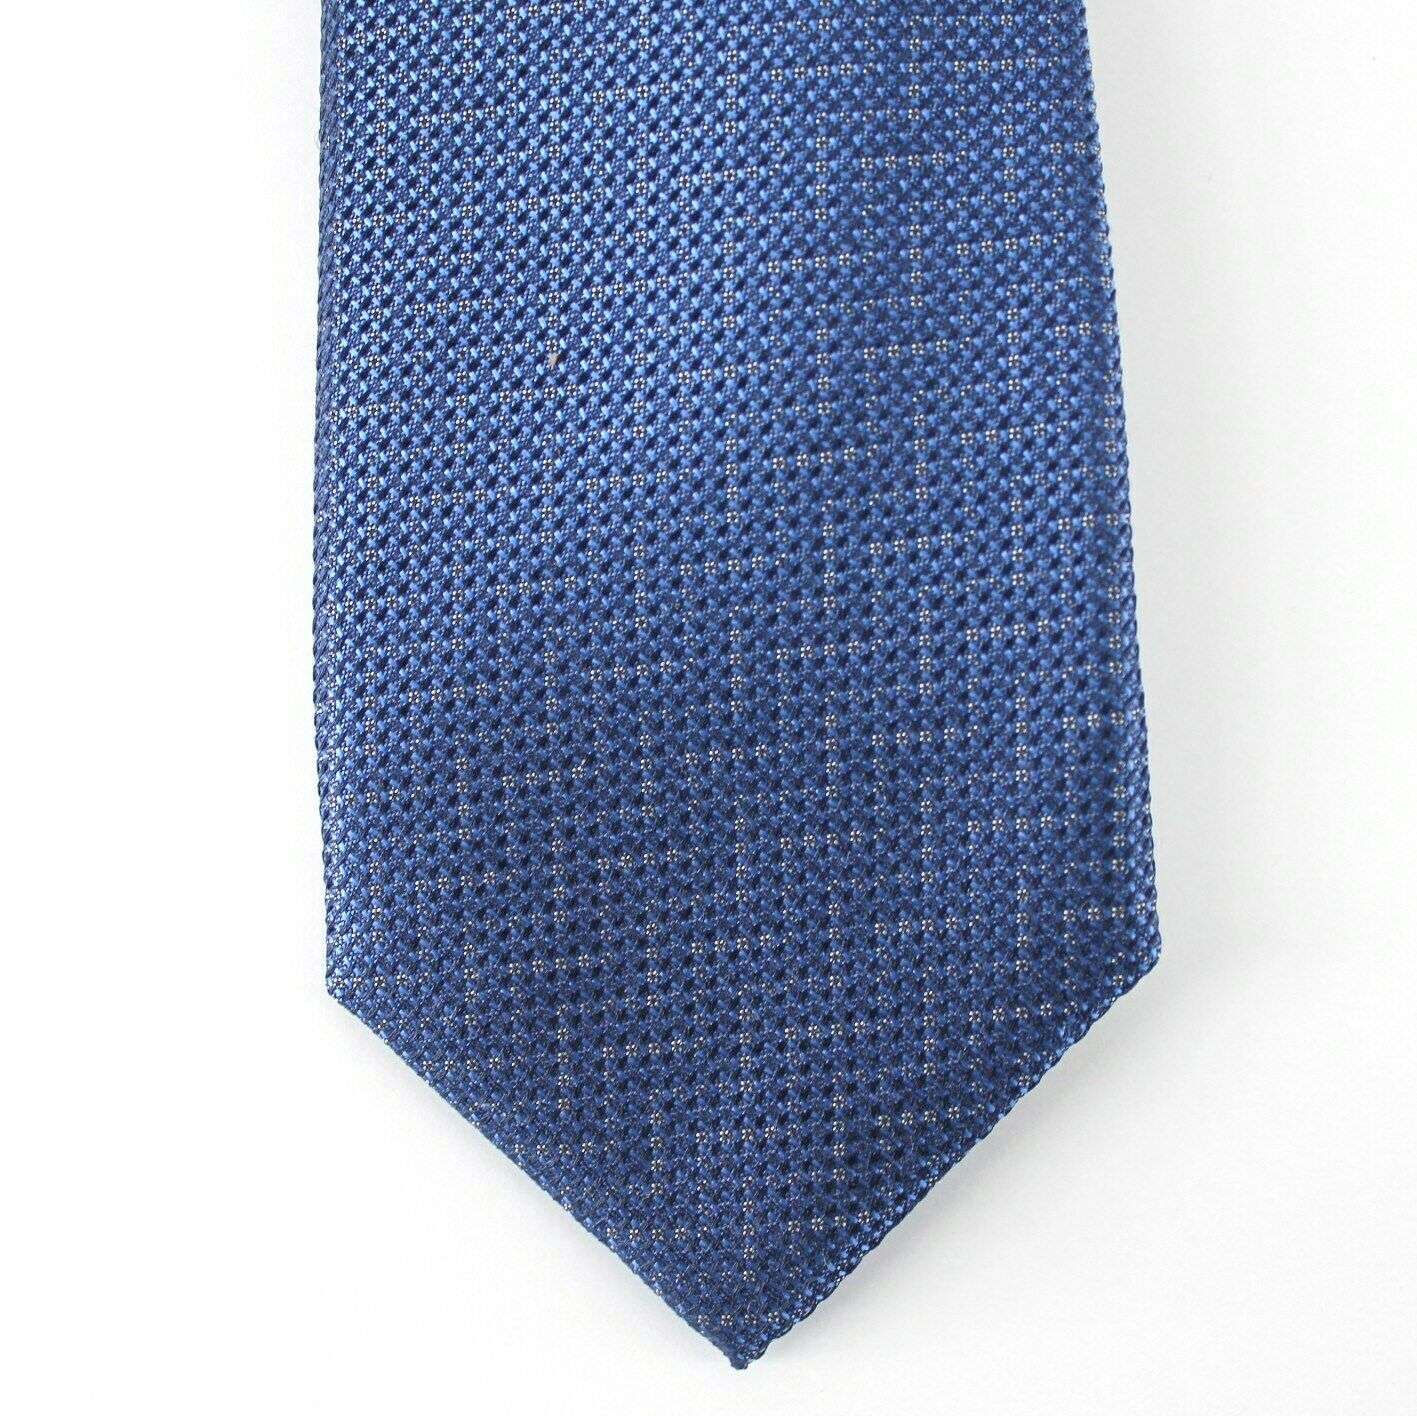 Alfani Neck Tie Blue Cleveland Abstract 100% Silk Slim Skinny Mens New